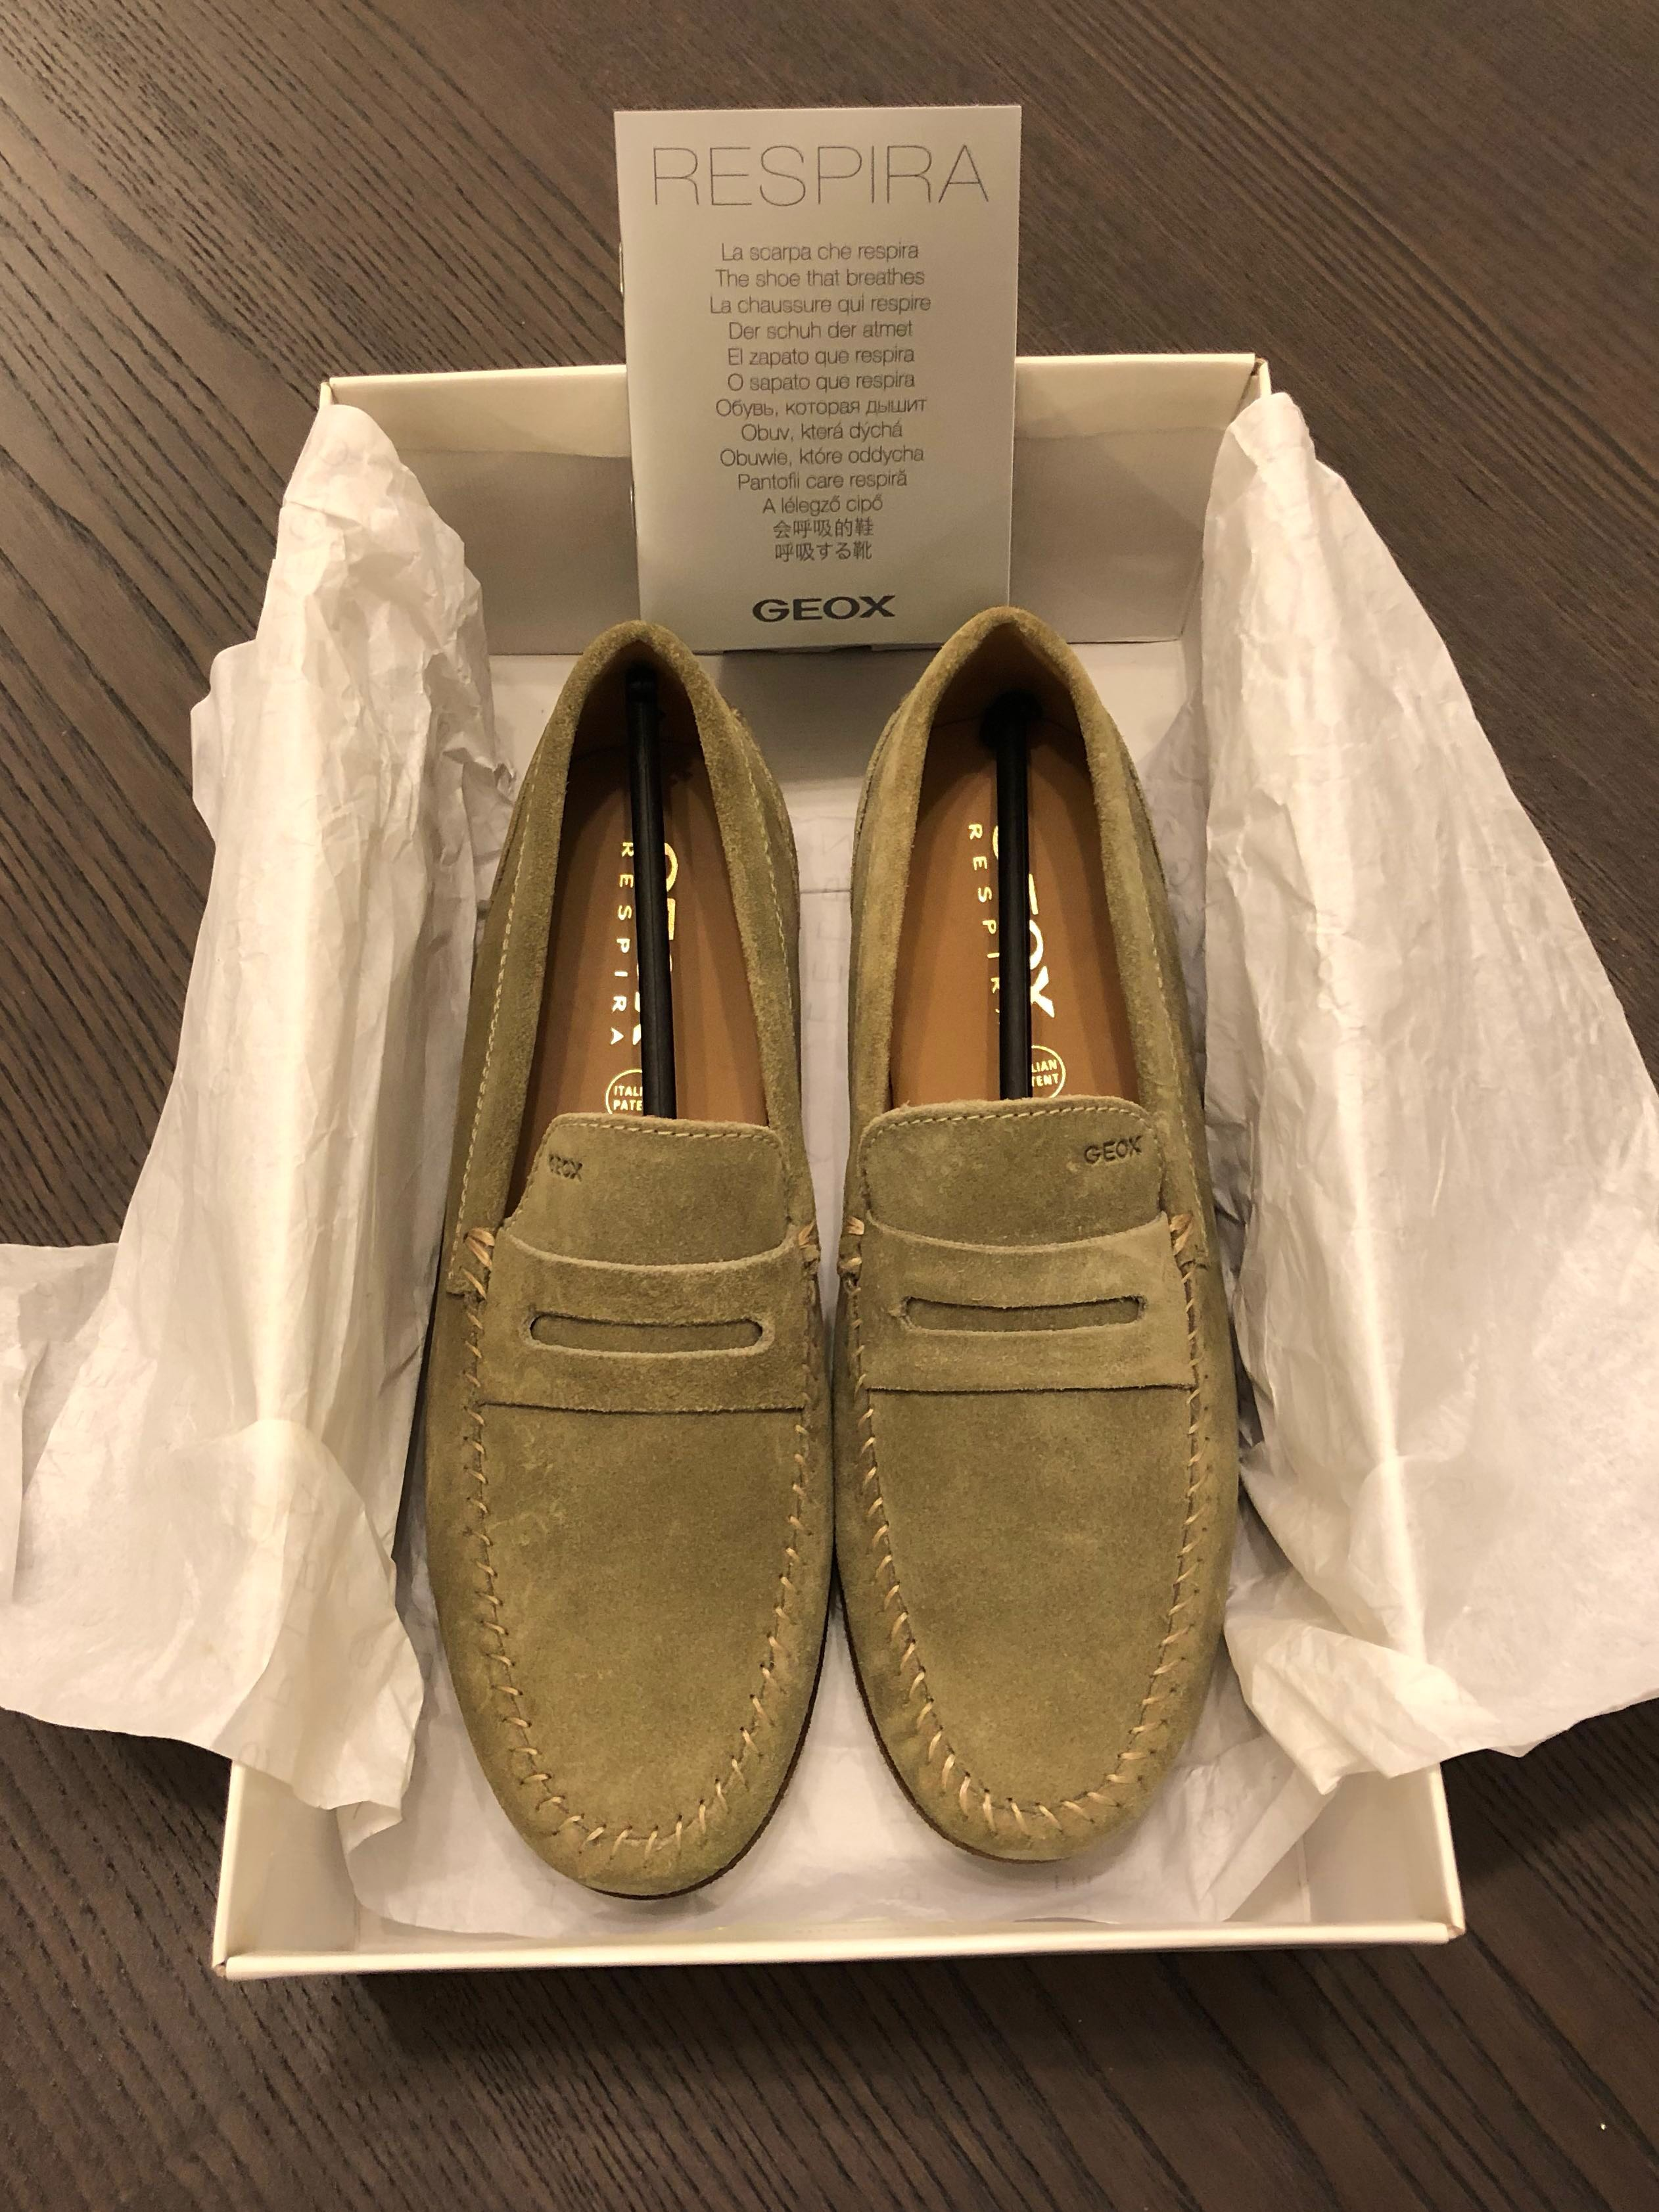 16411f240595d Geox Respira Loafers Brand new in Box Size 42, Men's Fashion, Footwear,  Others on Carousell